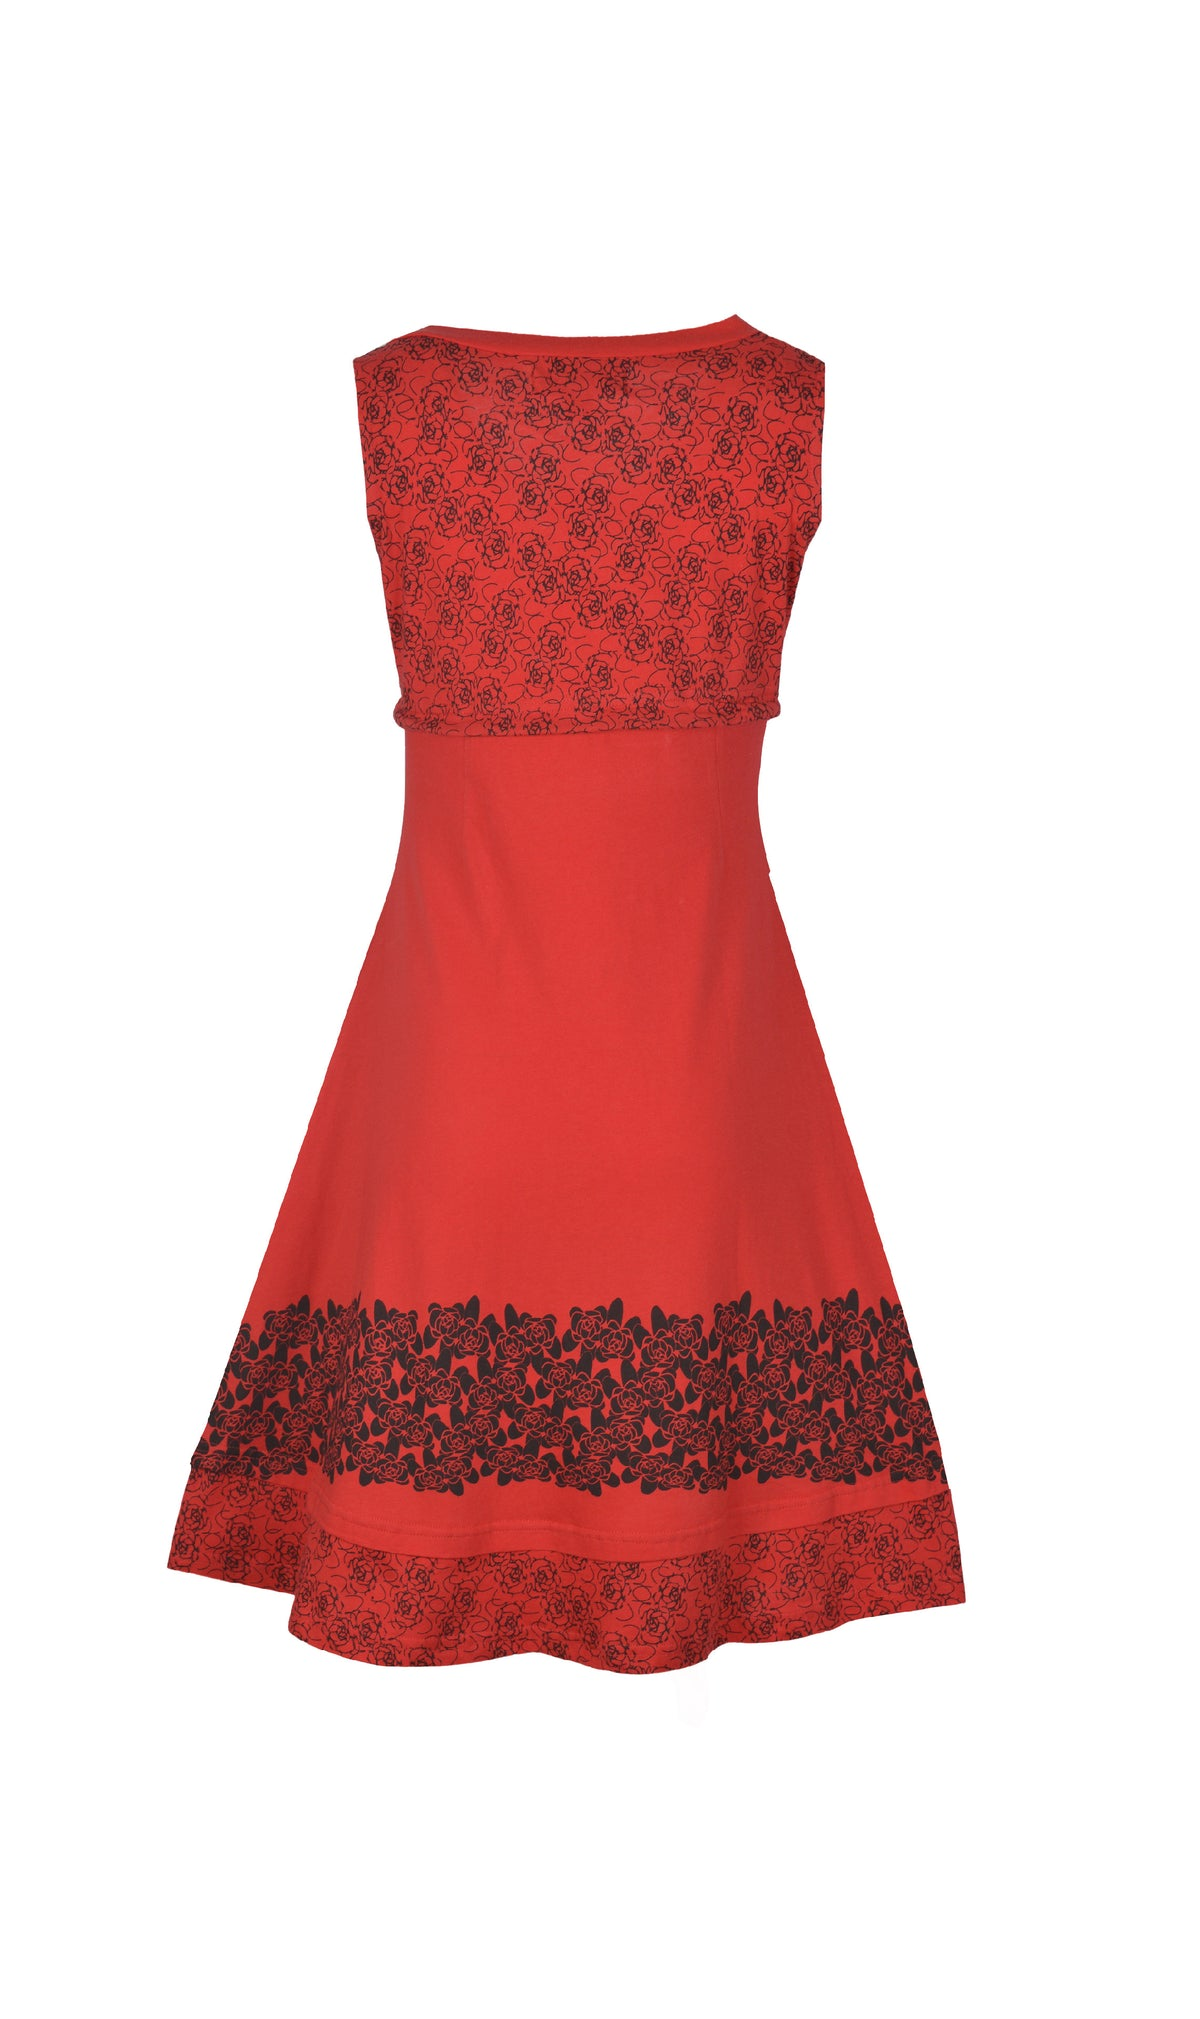 Red Cotton frock Style Sleeveless Skater Dress. - Craze Trade Limited